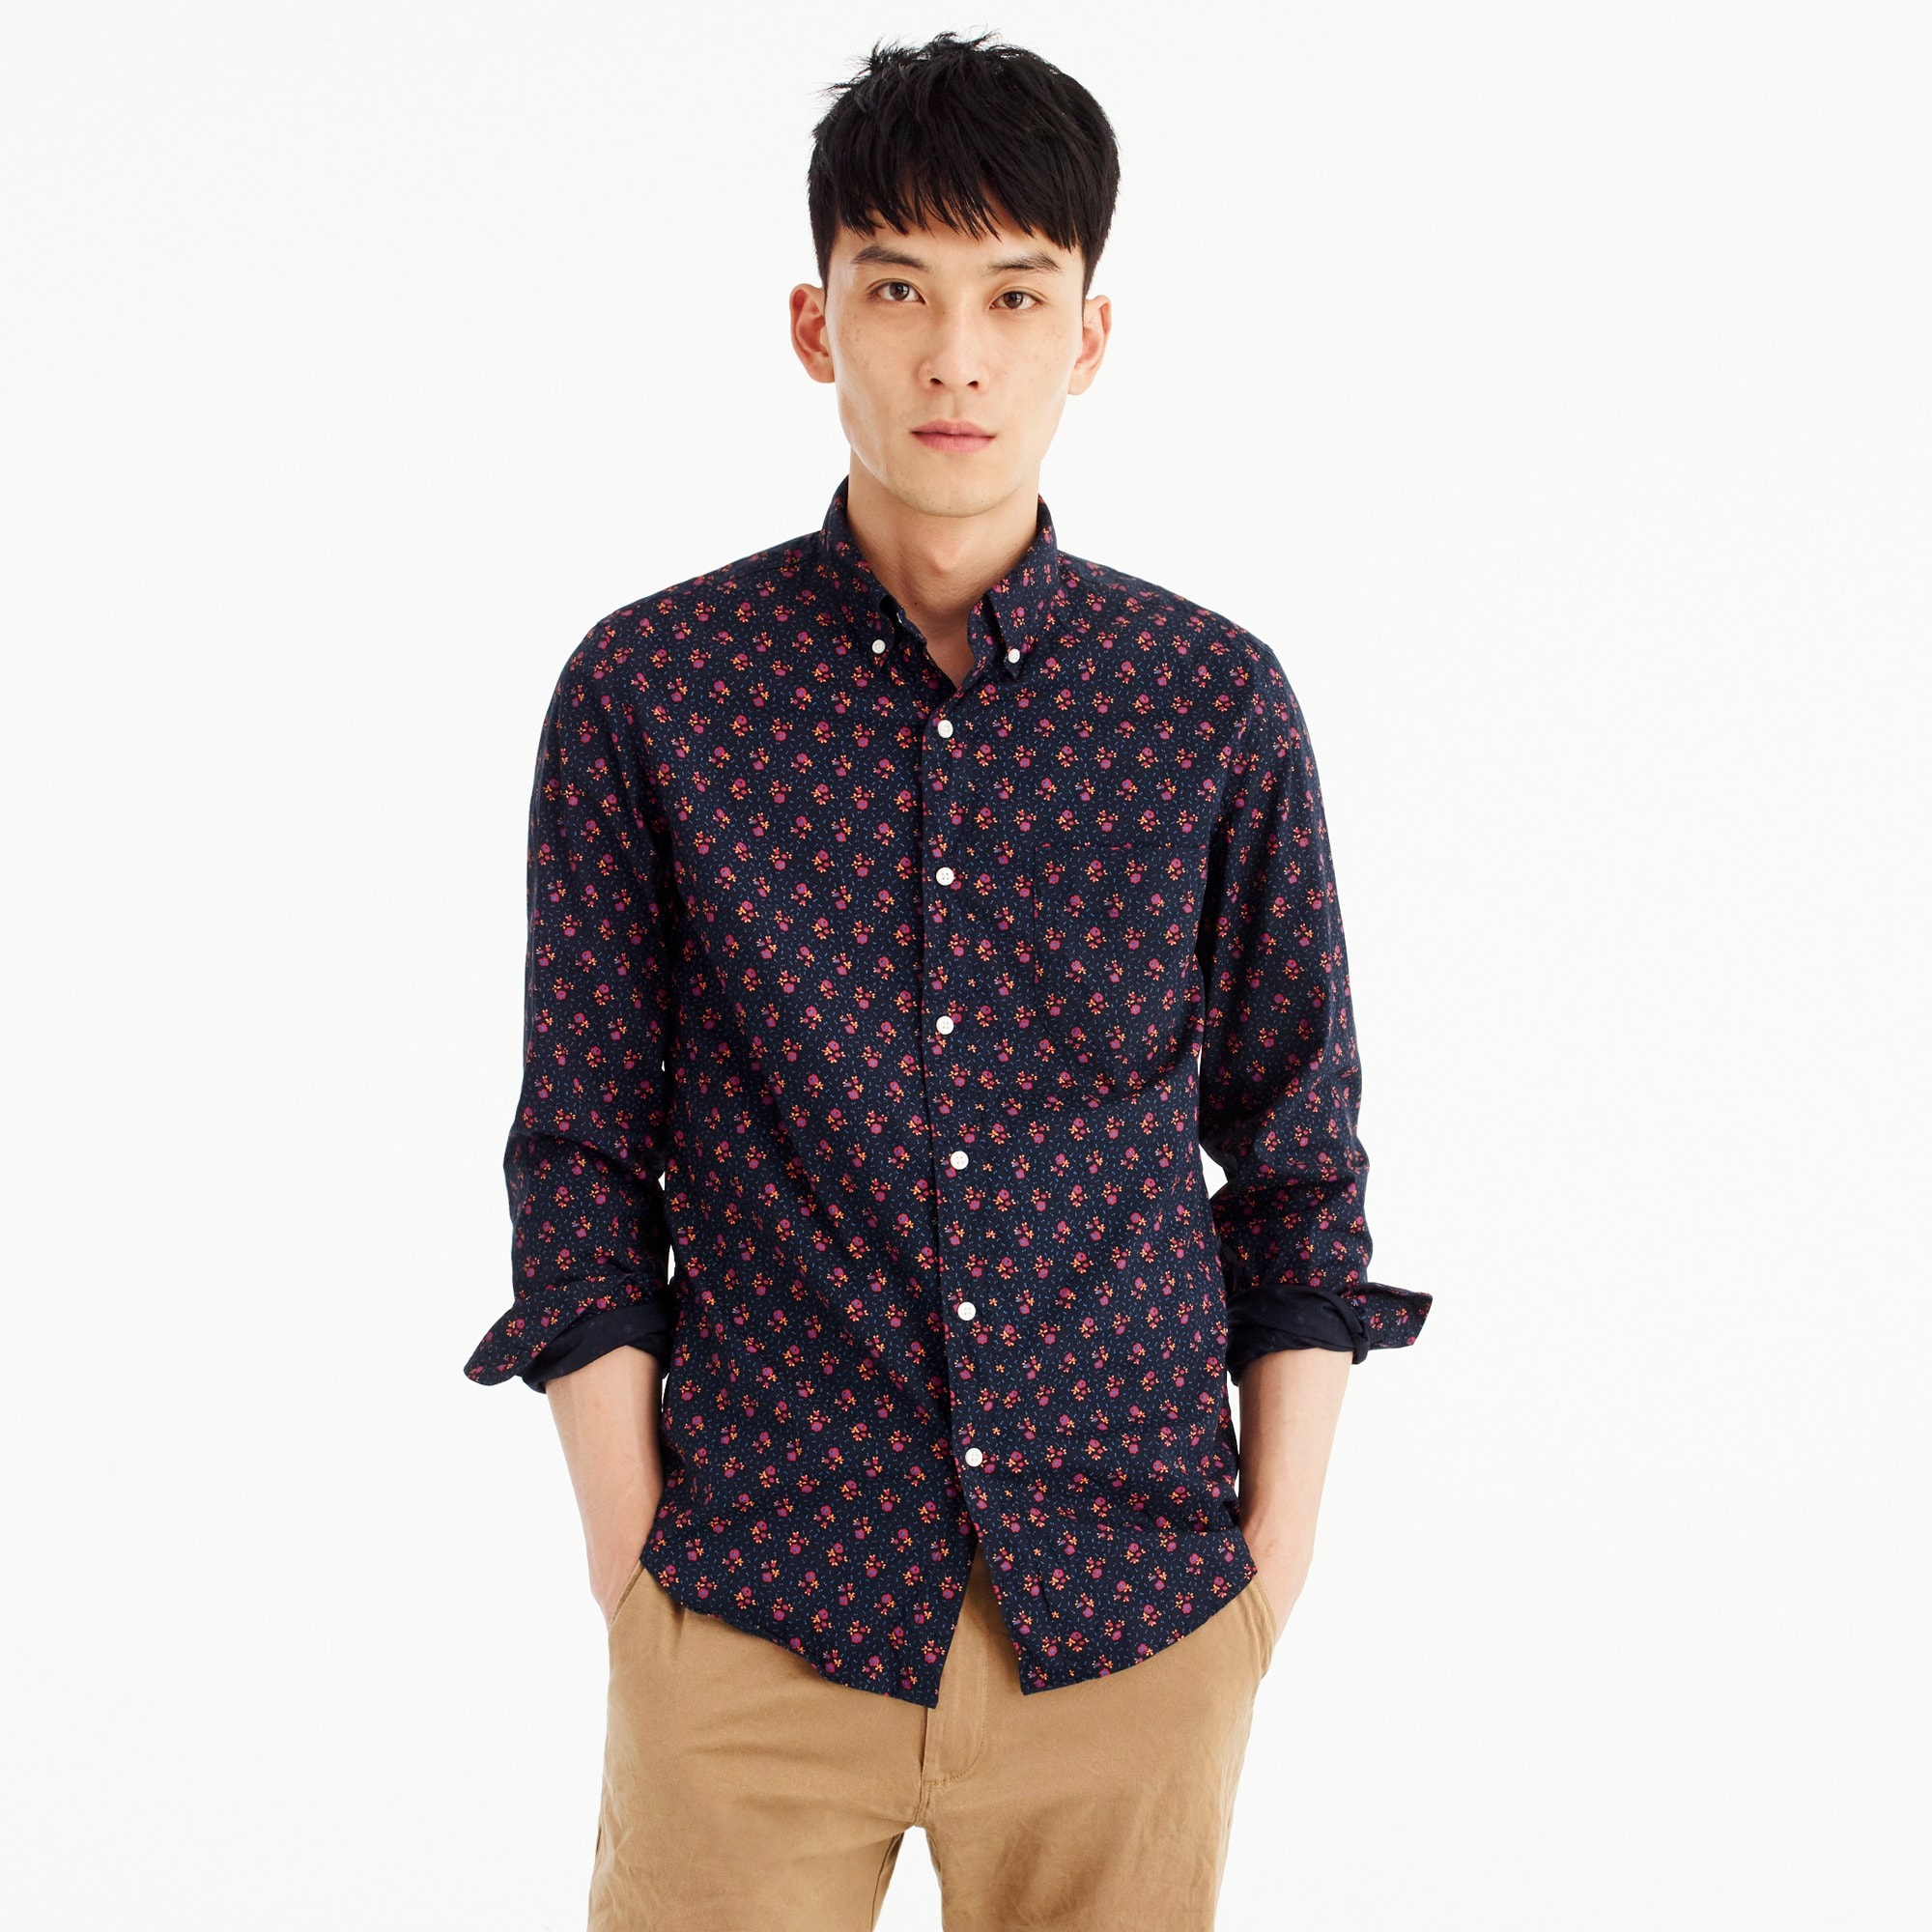 Slim stretch Secret Wash shirt in navy floral